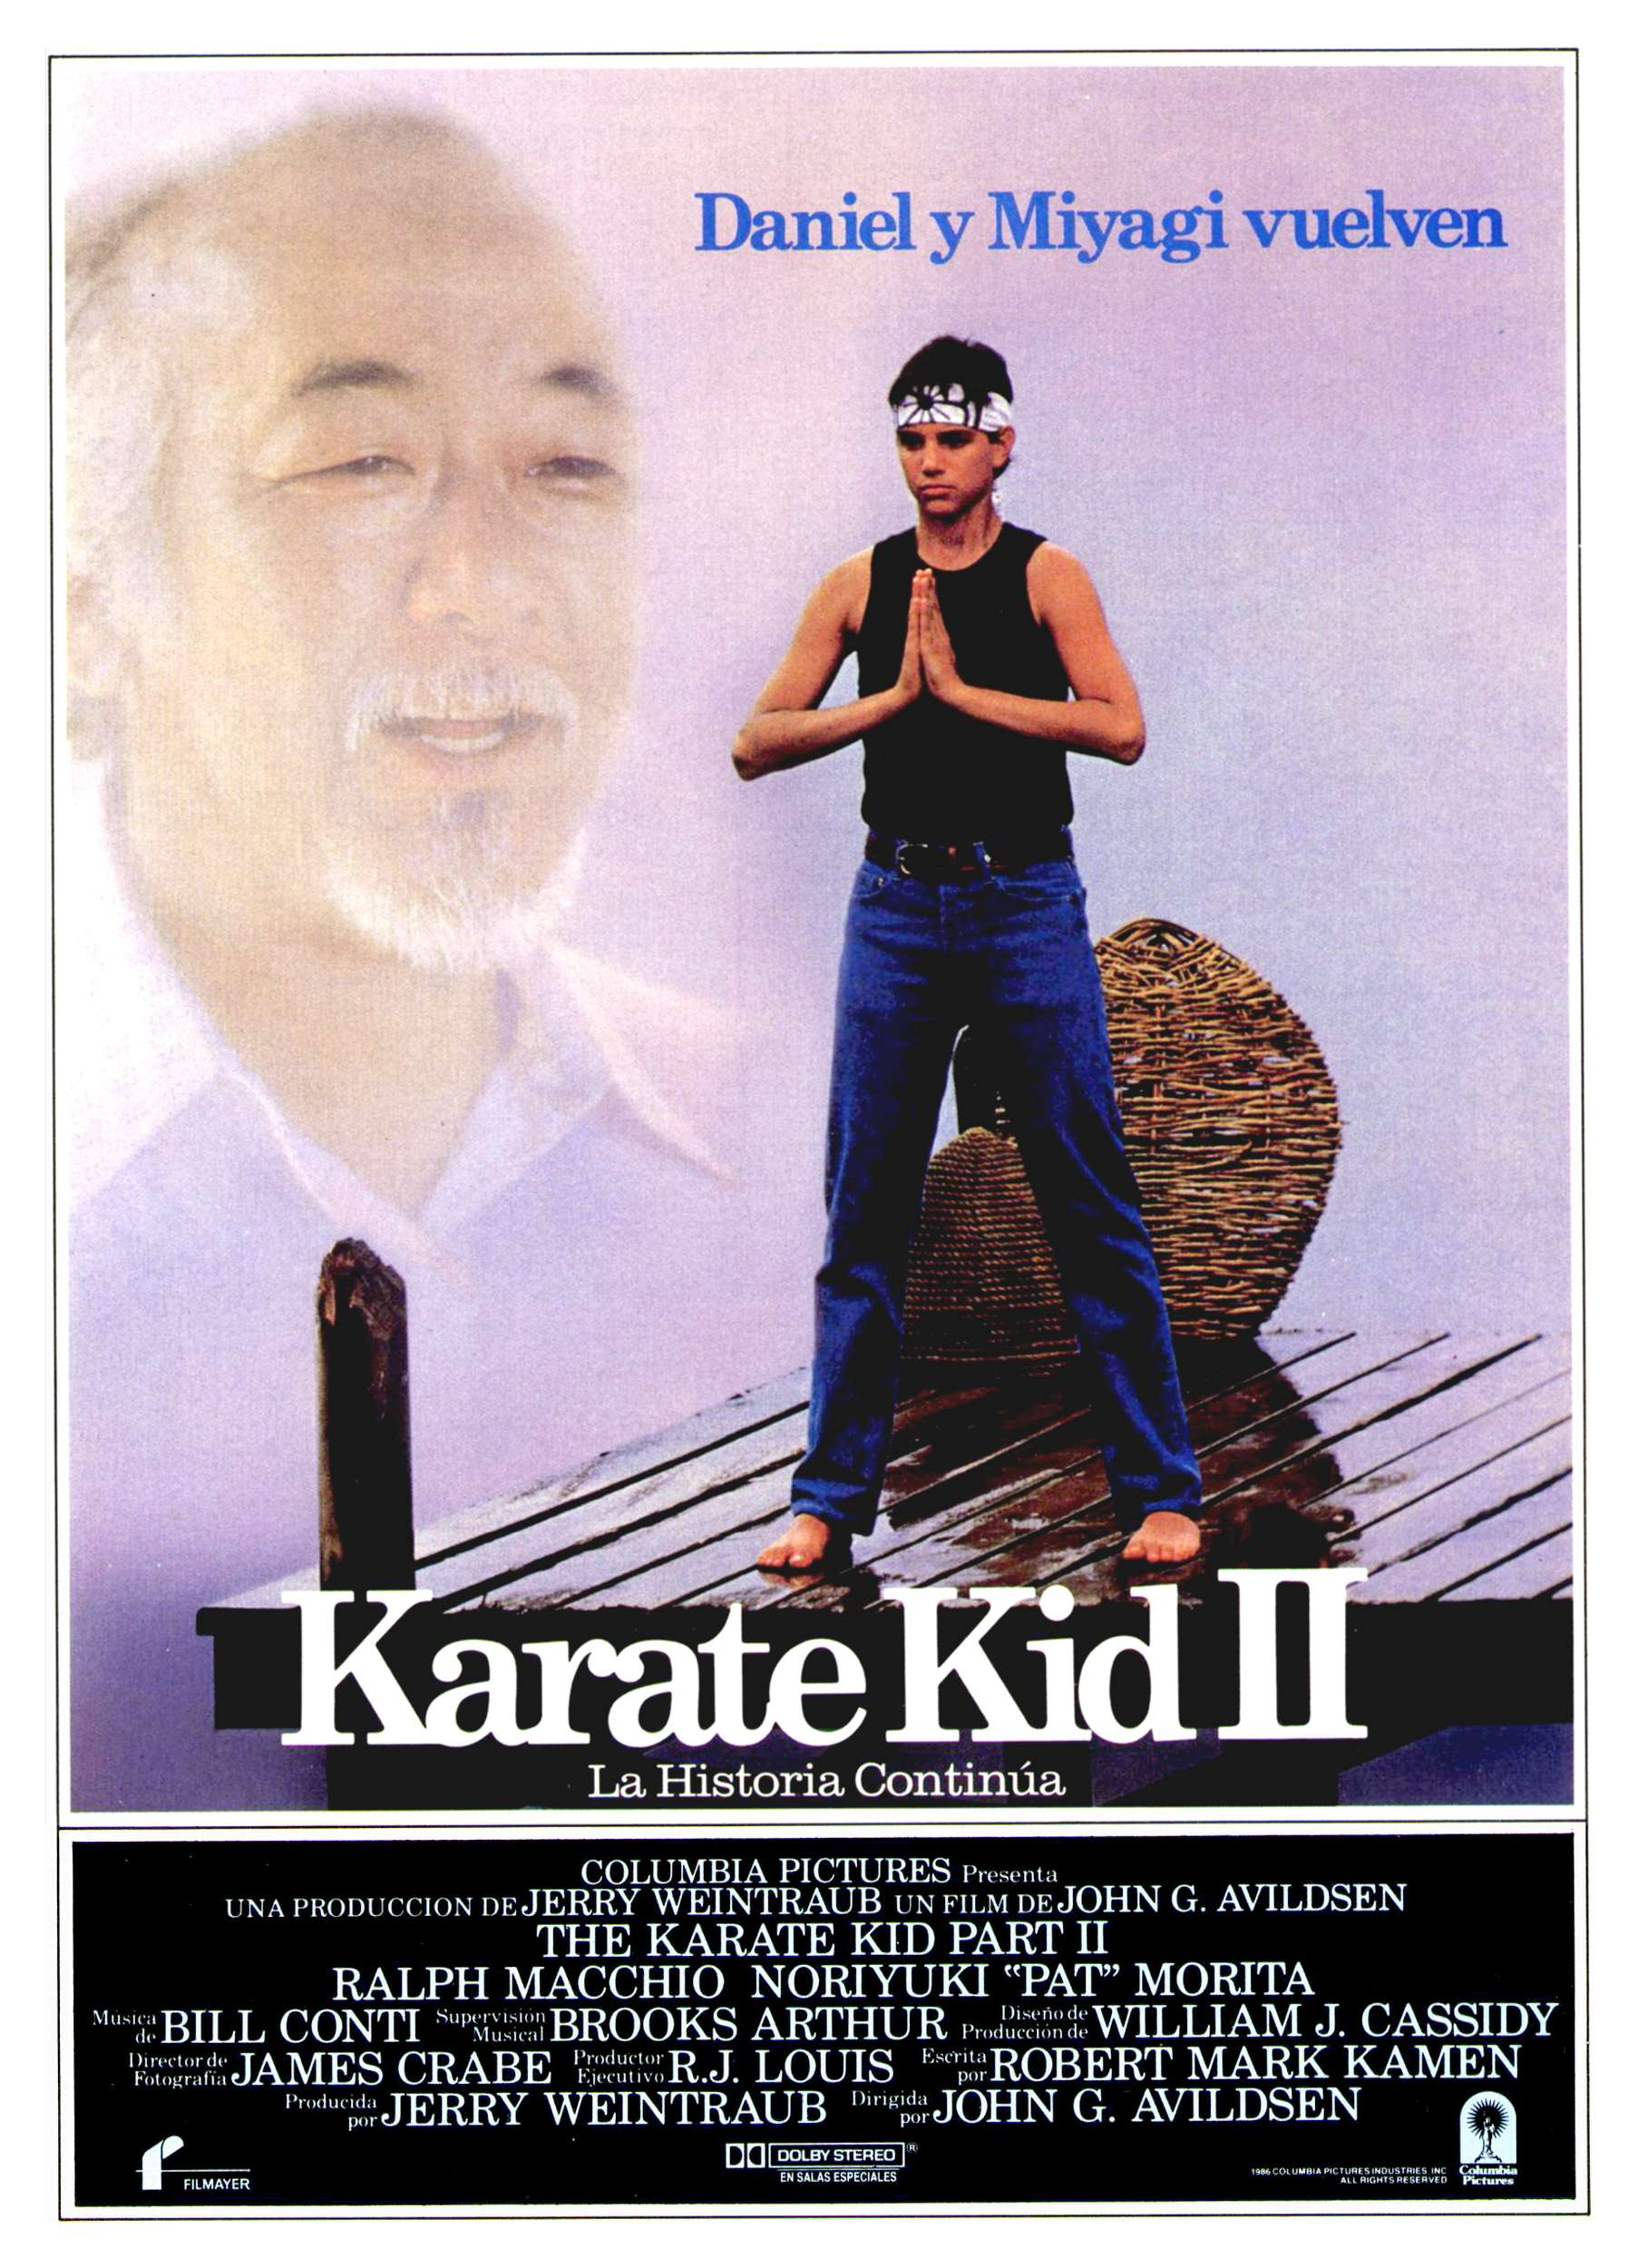 The Karate Kid Part II Spanish poster